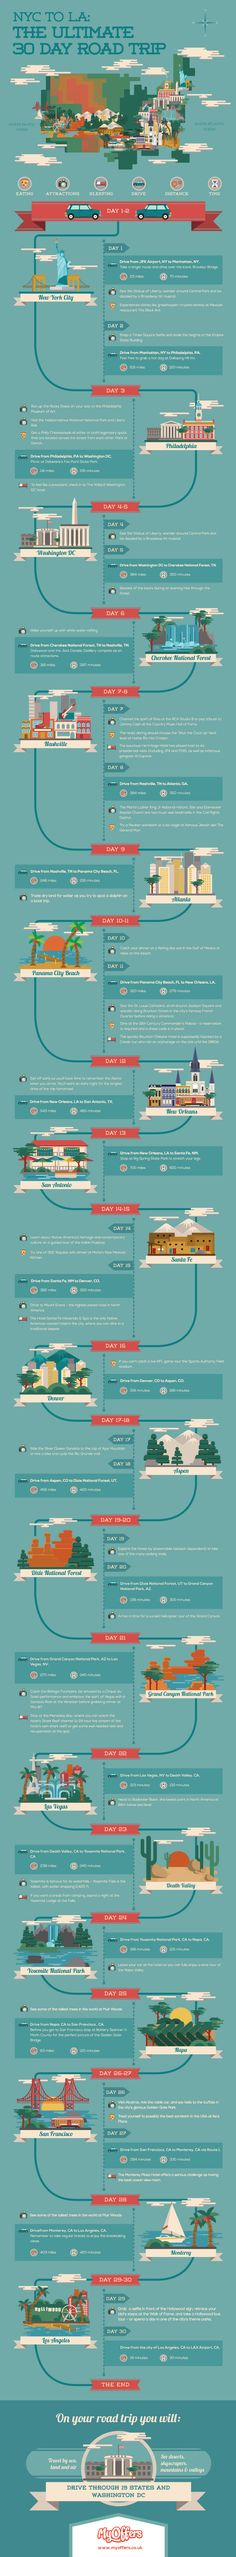 NYC to LA: The Ultimate 30 Day Road Trip #infographic #Travel